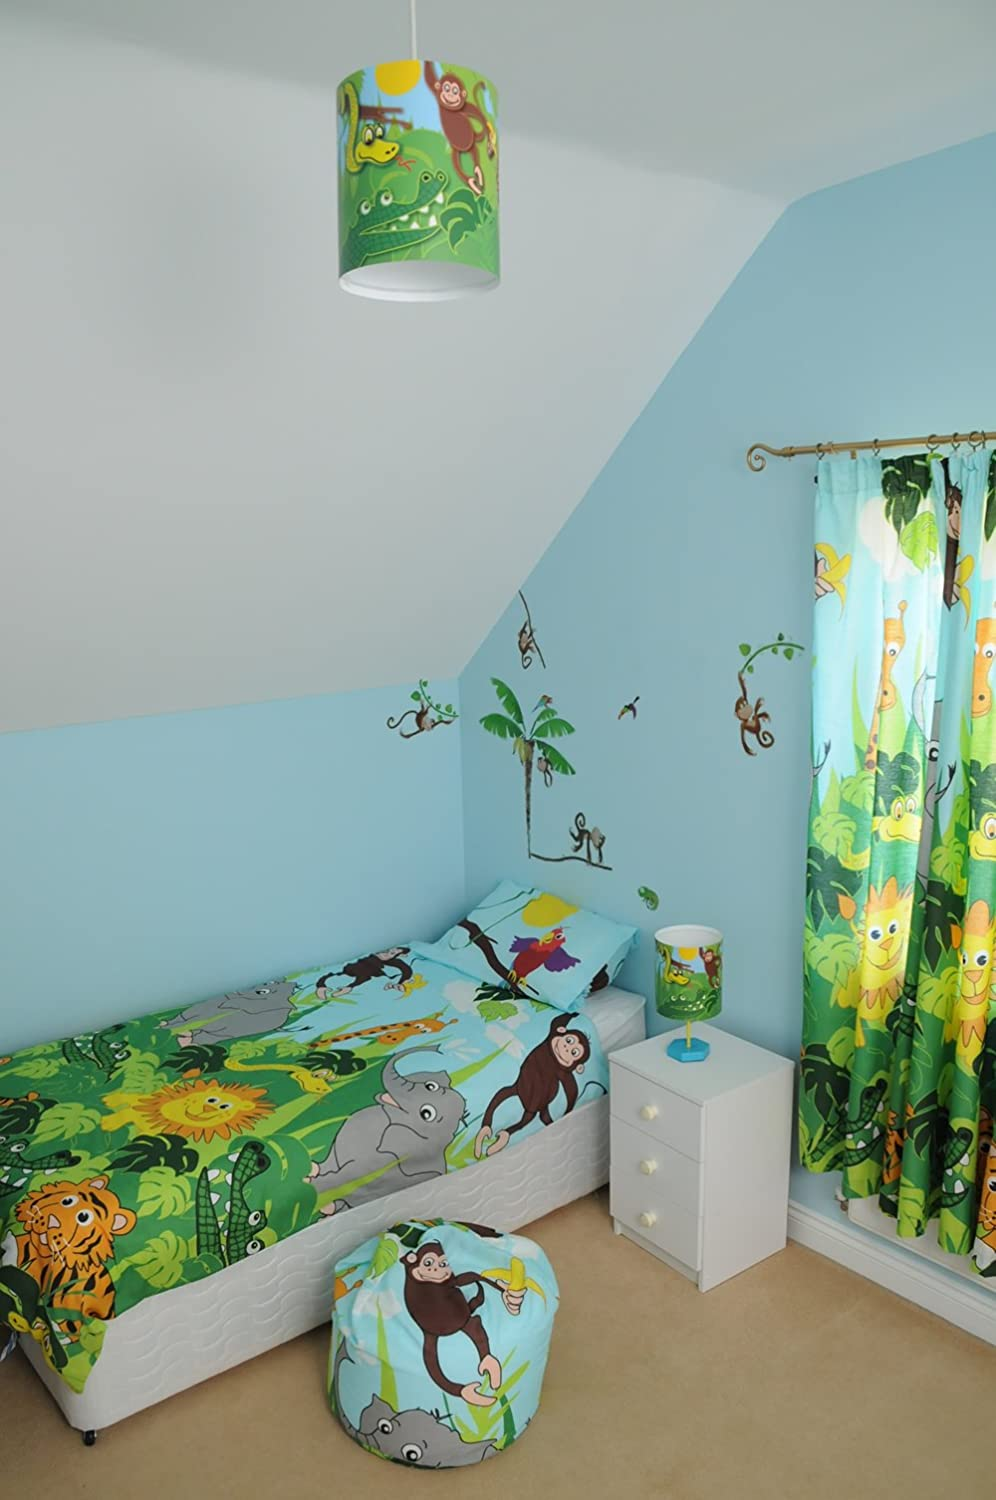 Jungle Toddler Bedding With Lions, Tigers And Monkeys: Amazon.co.uk:  Kitchen U0026 Home